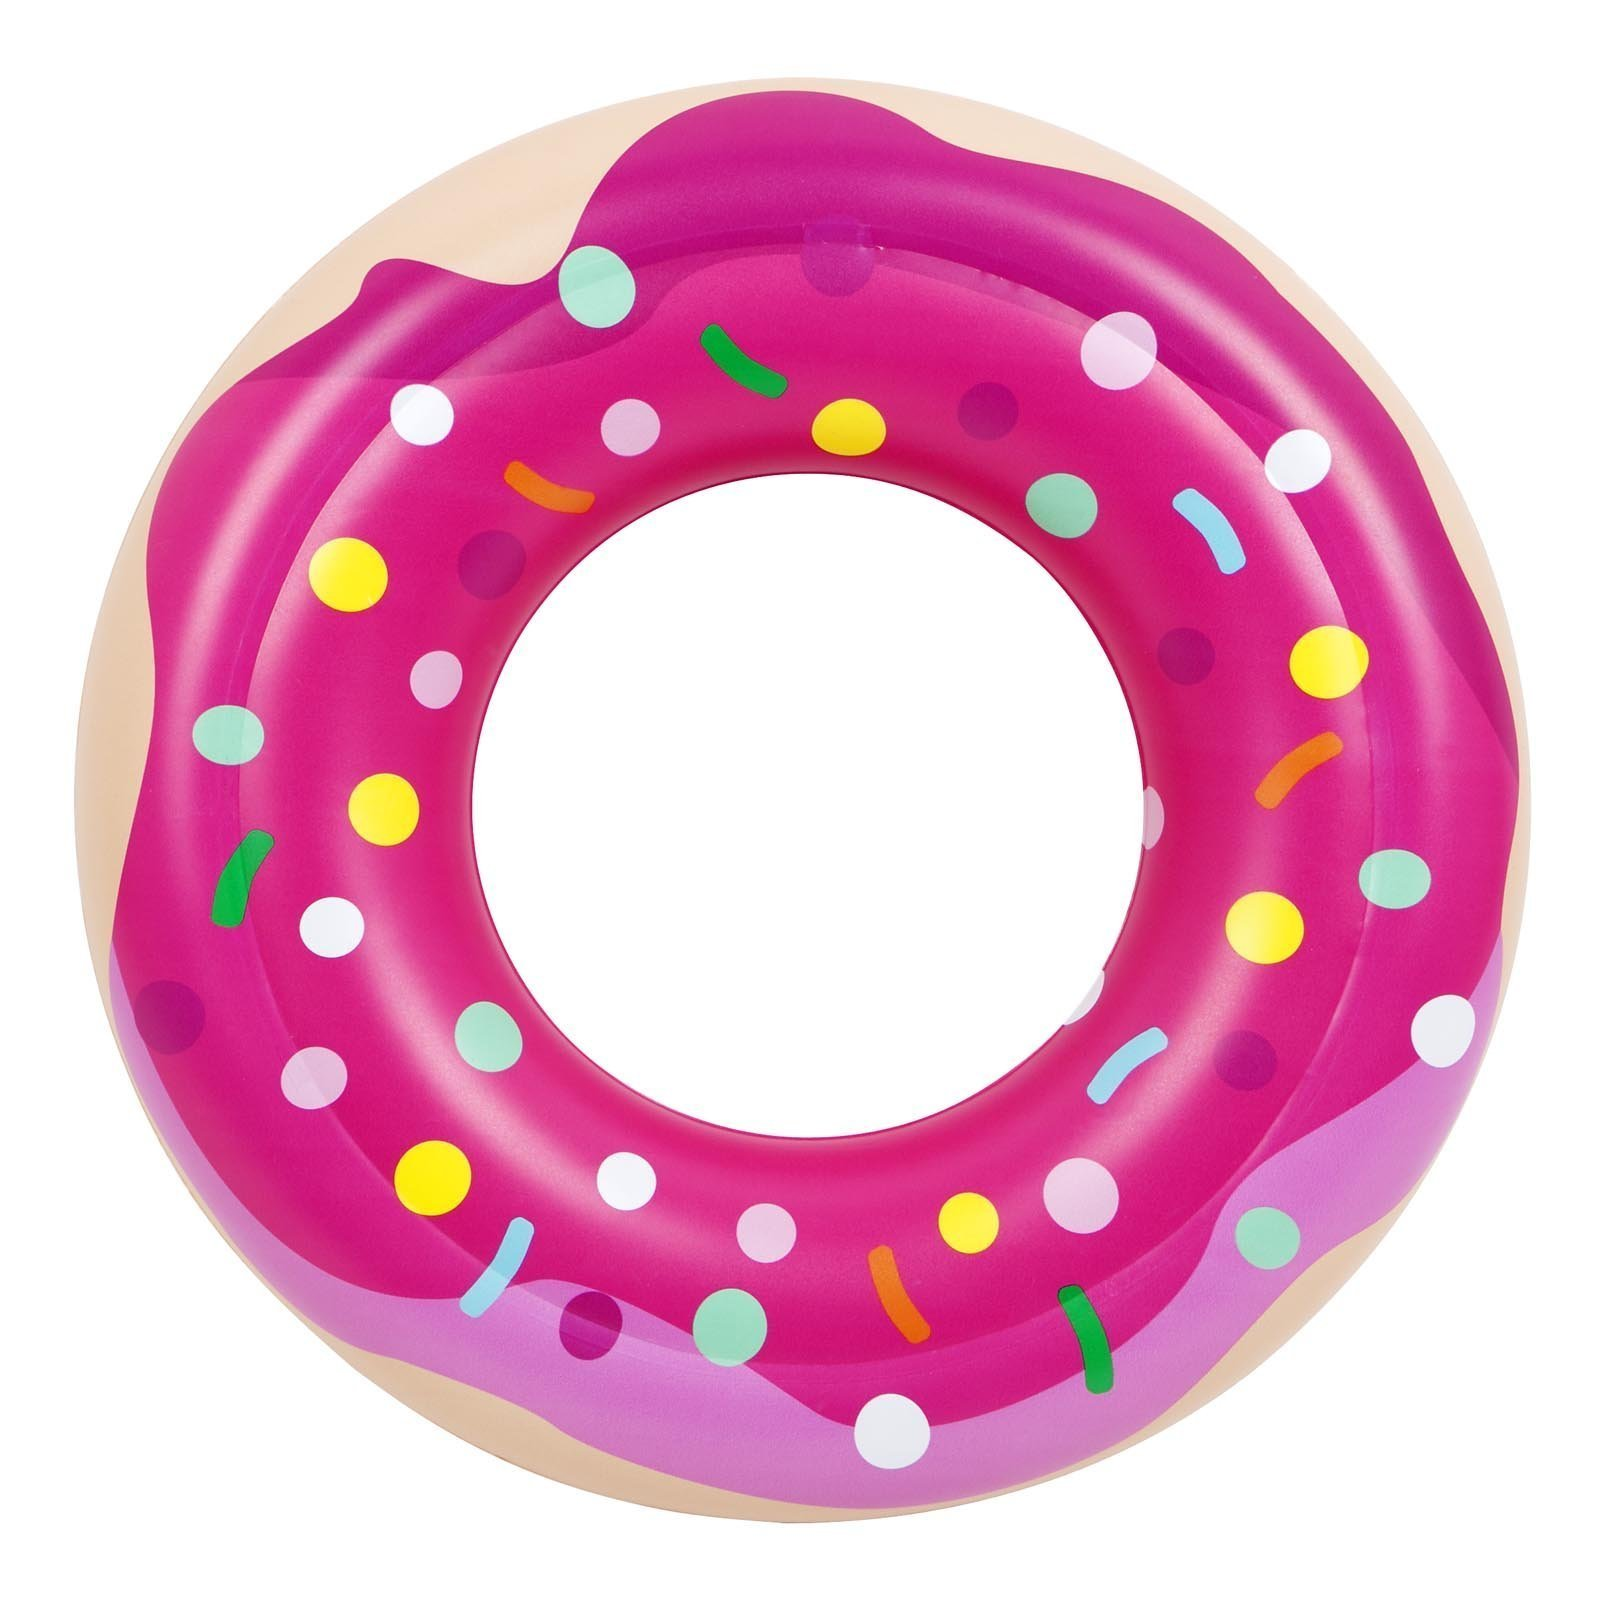 Awesome Kids Inflatable Donut Pool Ring Love Frankie